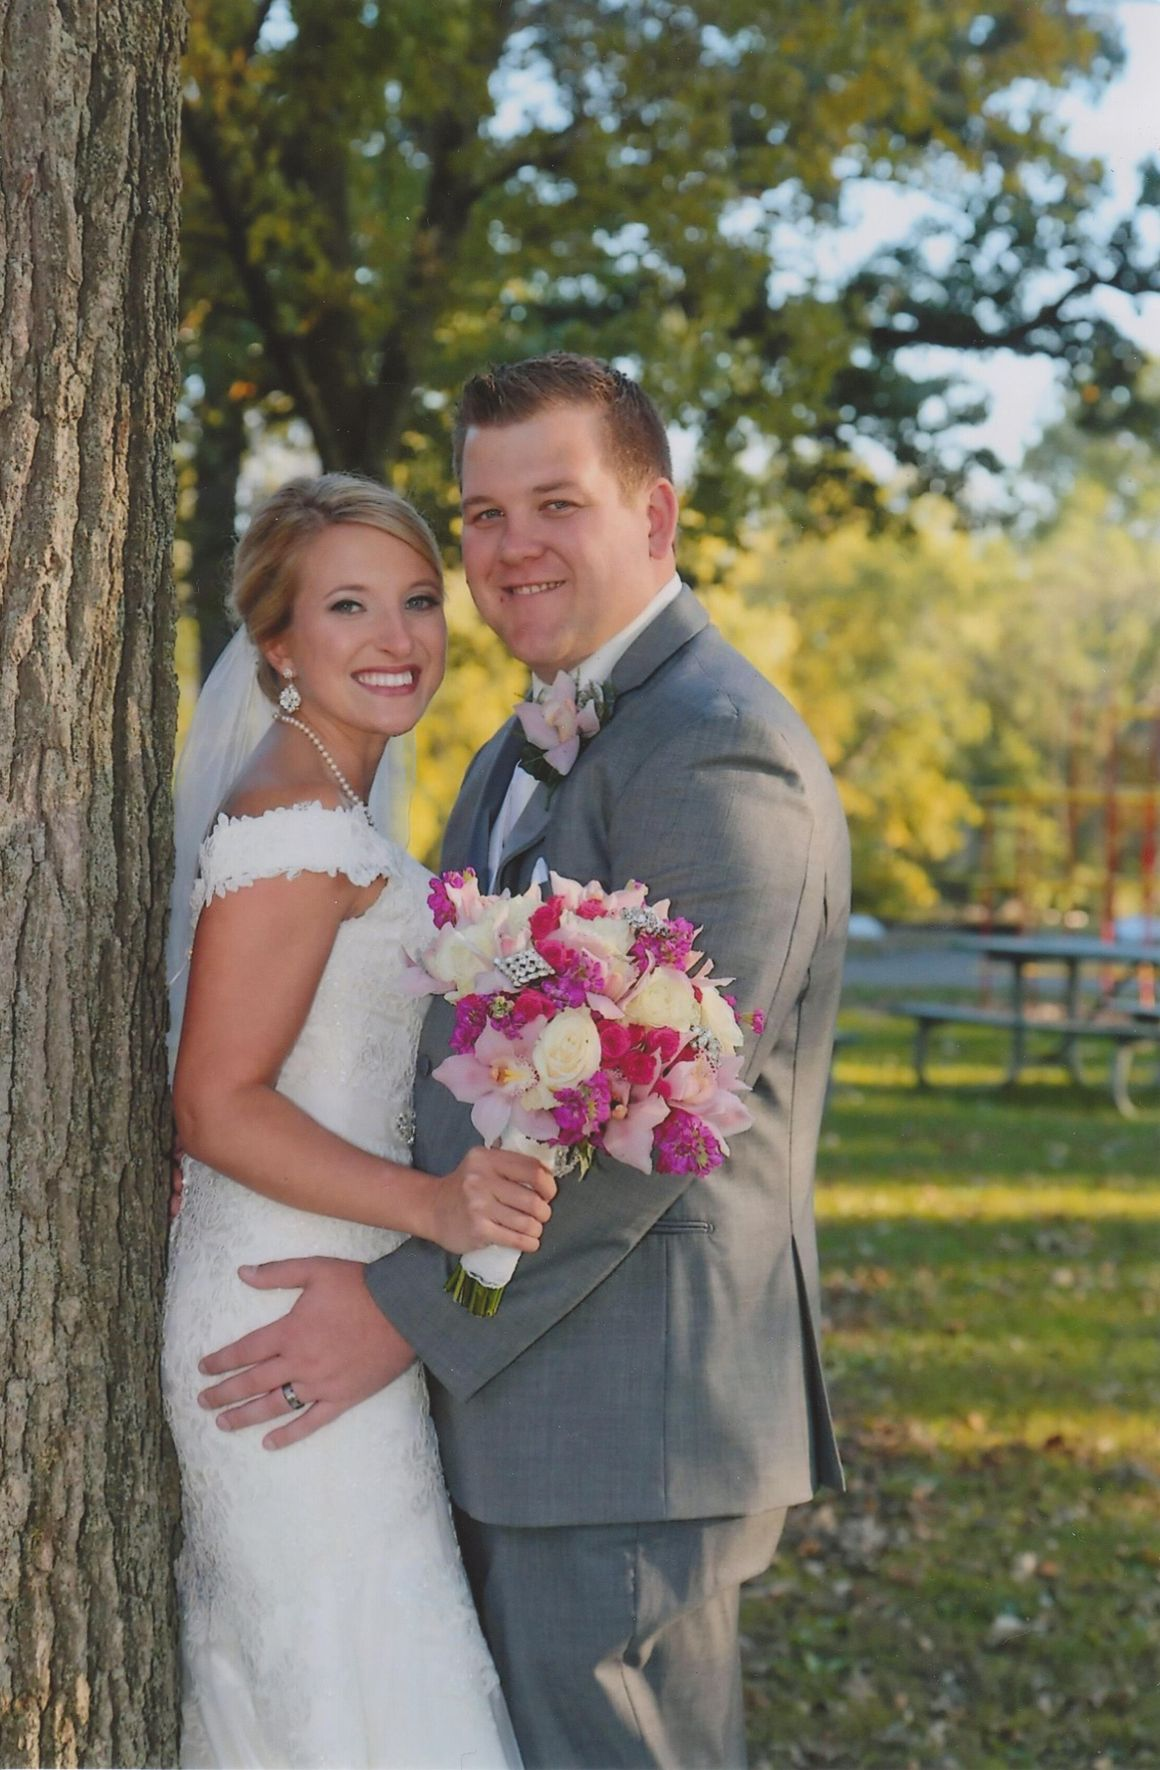 Wedding Hockenberry Grinestaff Weddings Daily Journal Com